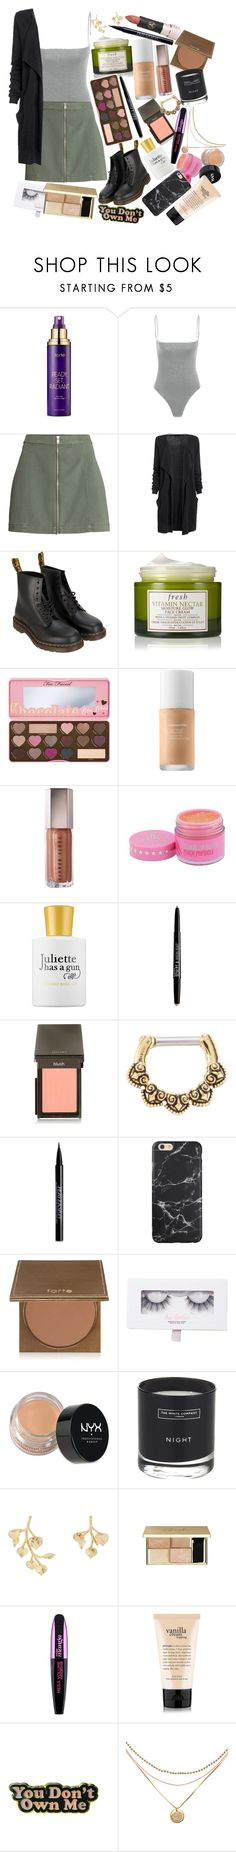 """Now I'm gone, gone and out of your life. Like a blood moon burning underneath the sun"" by thelyricsmatter ❤ liked on Polyvore featuring tarte, Dr. Martens, Fresh, Too Faced Cosmetics, Juliette Has A Gun, NYX, Jouer, Hot Topic, Urban Decay and Luz Lashes"